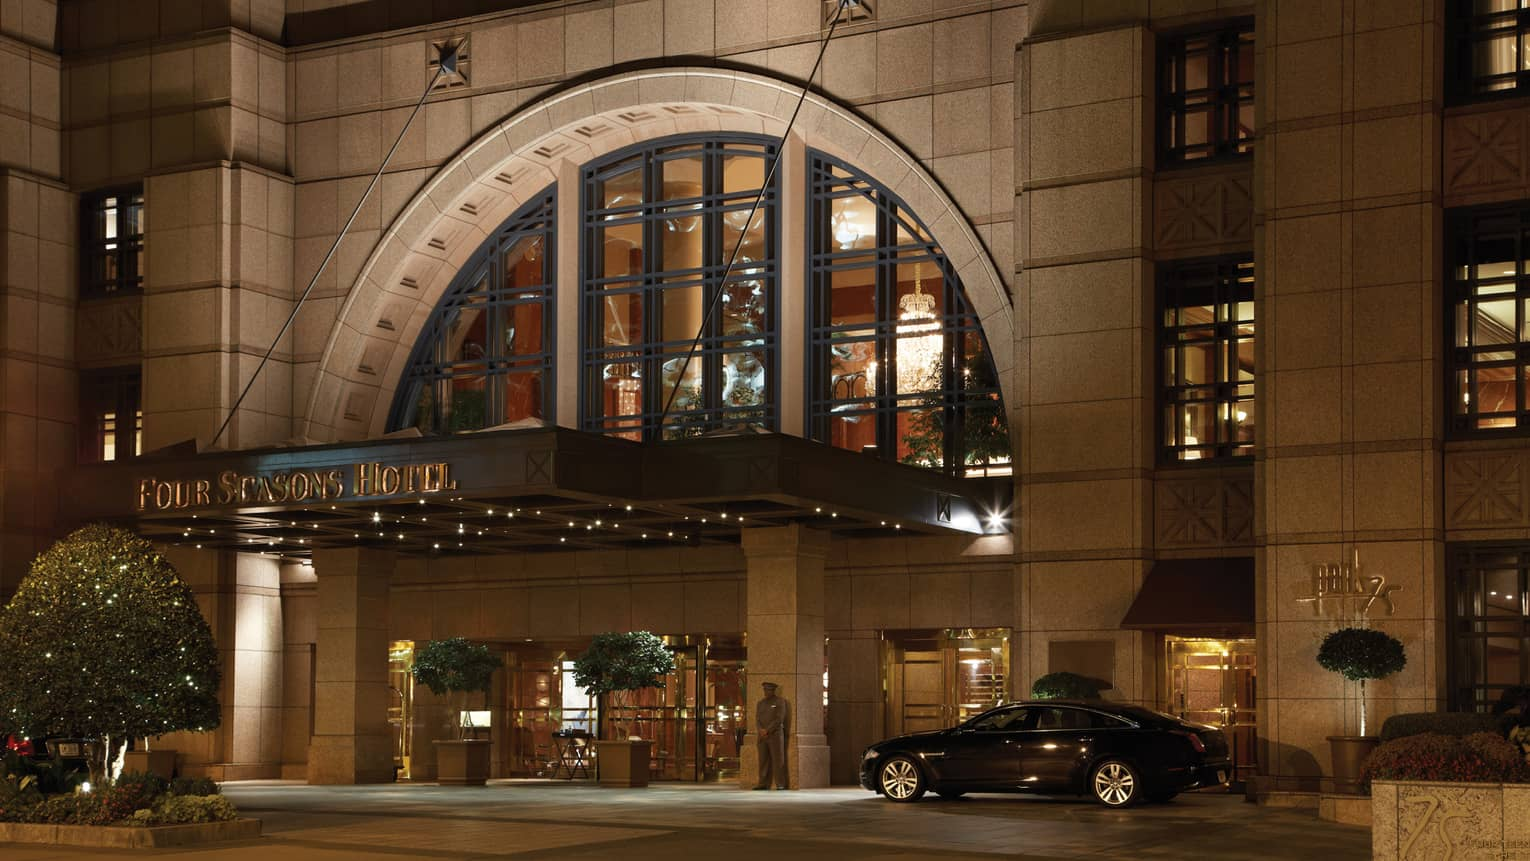 Black car beside arched doorway at front entrance, Four Seasons Hotel sign at night